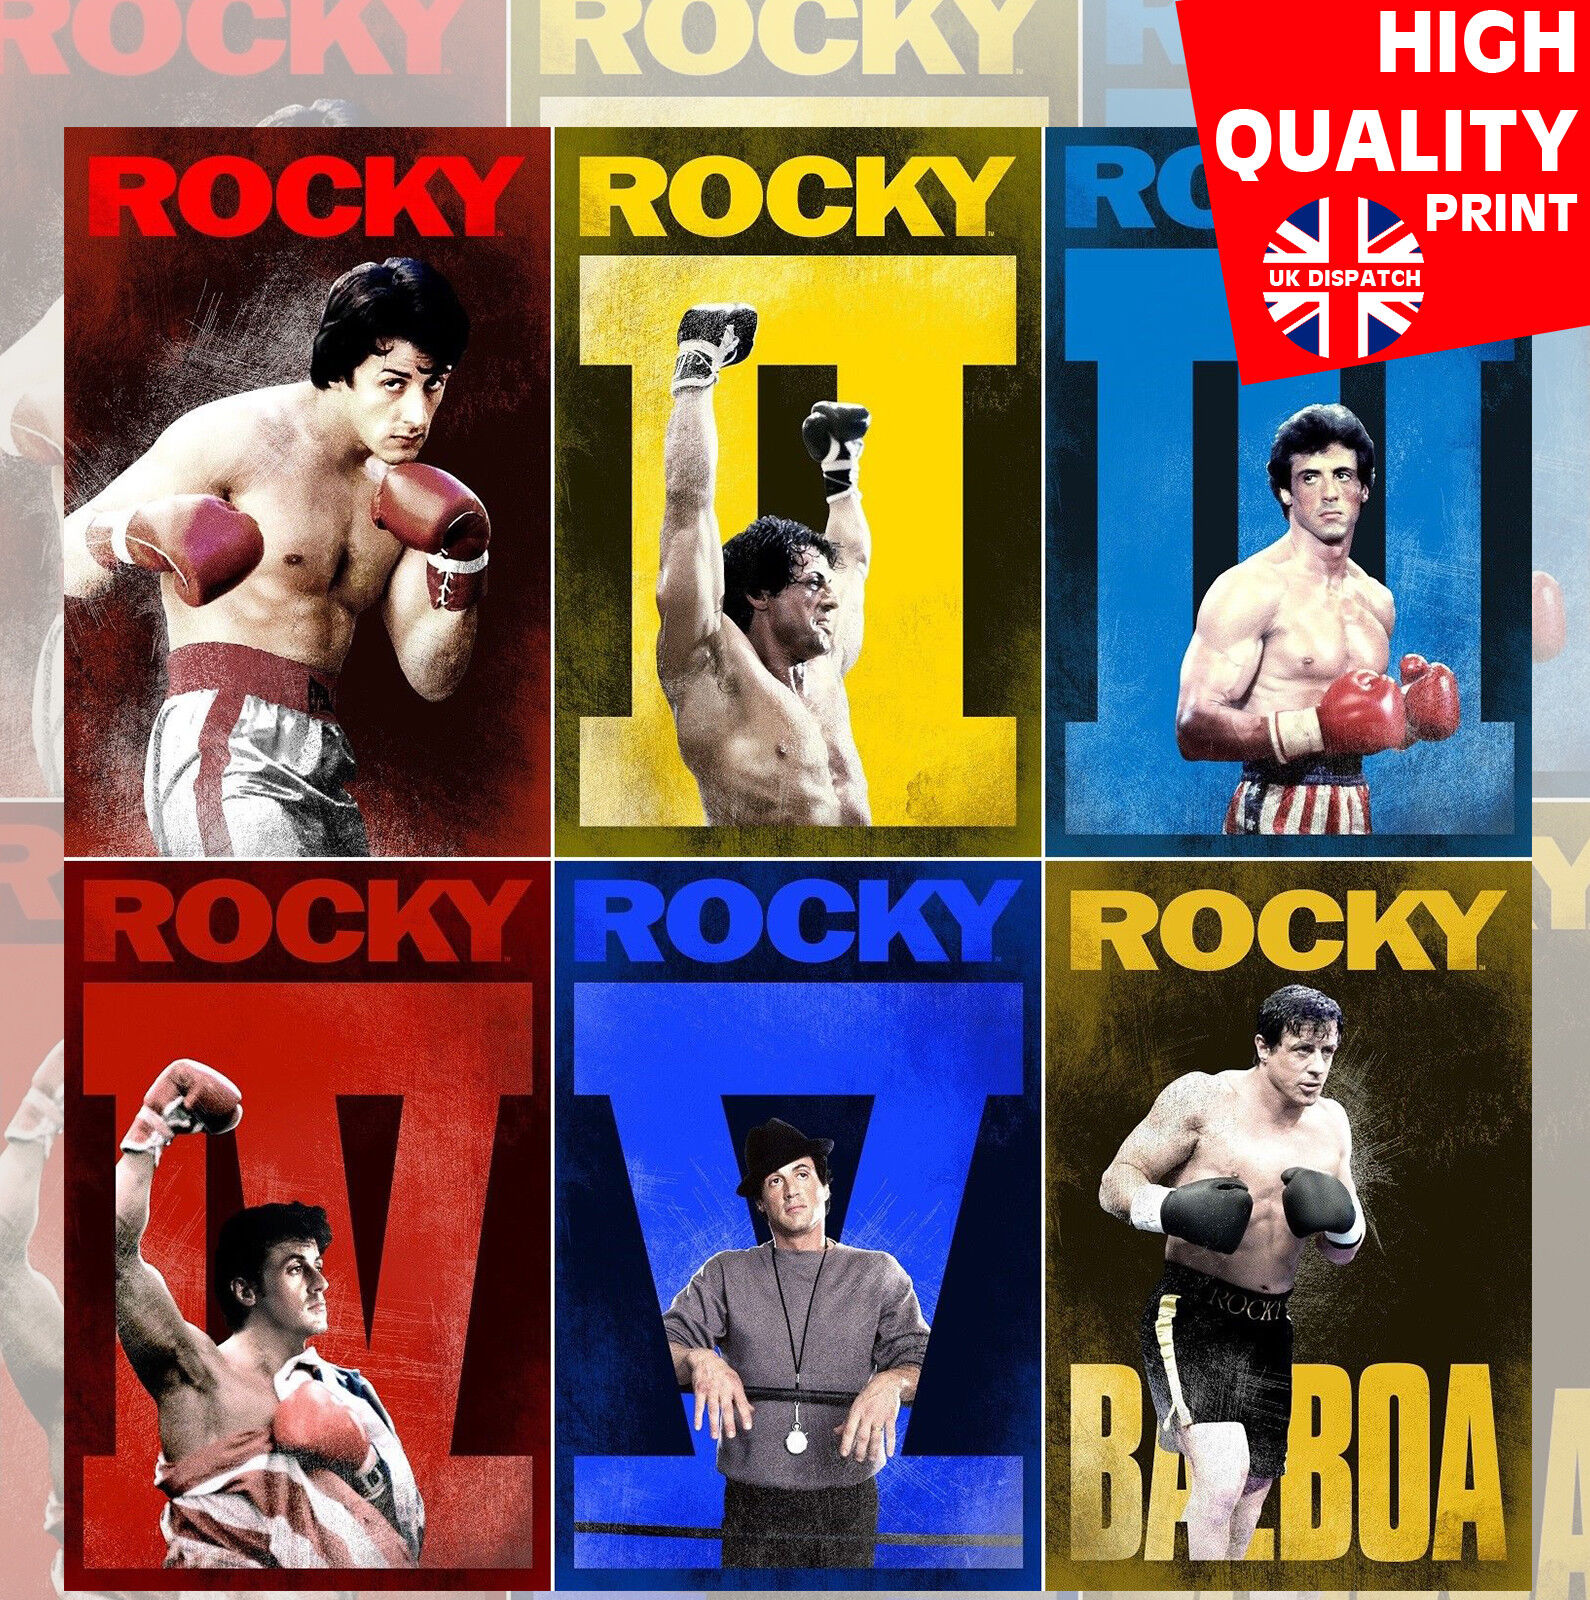 Rocky A3 Poster 1